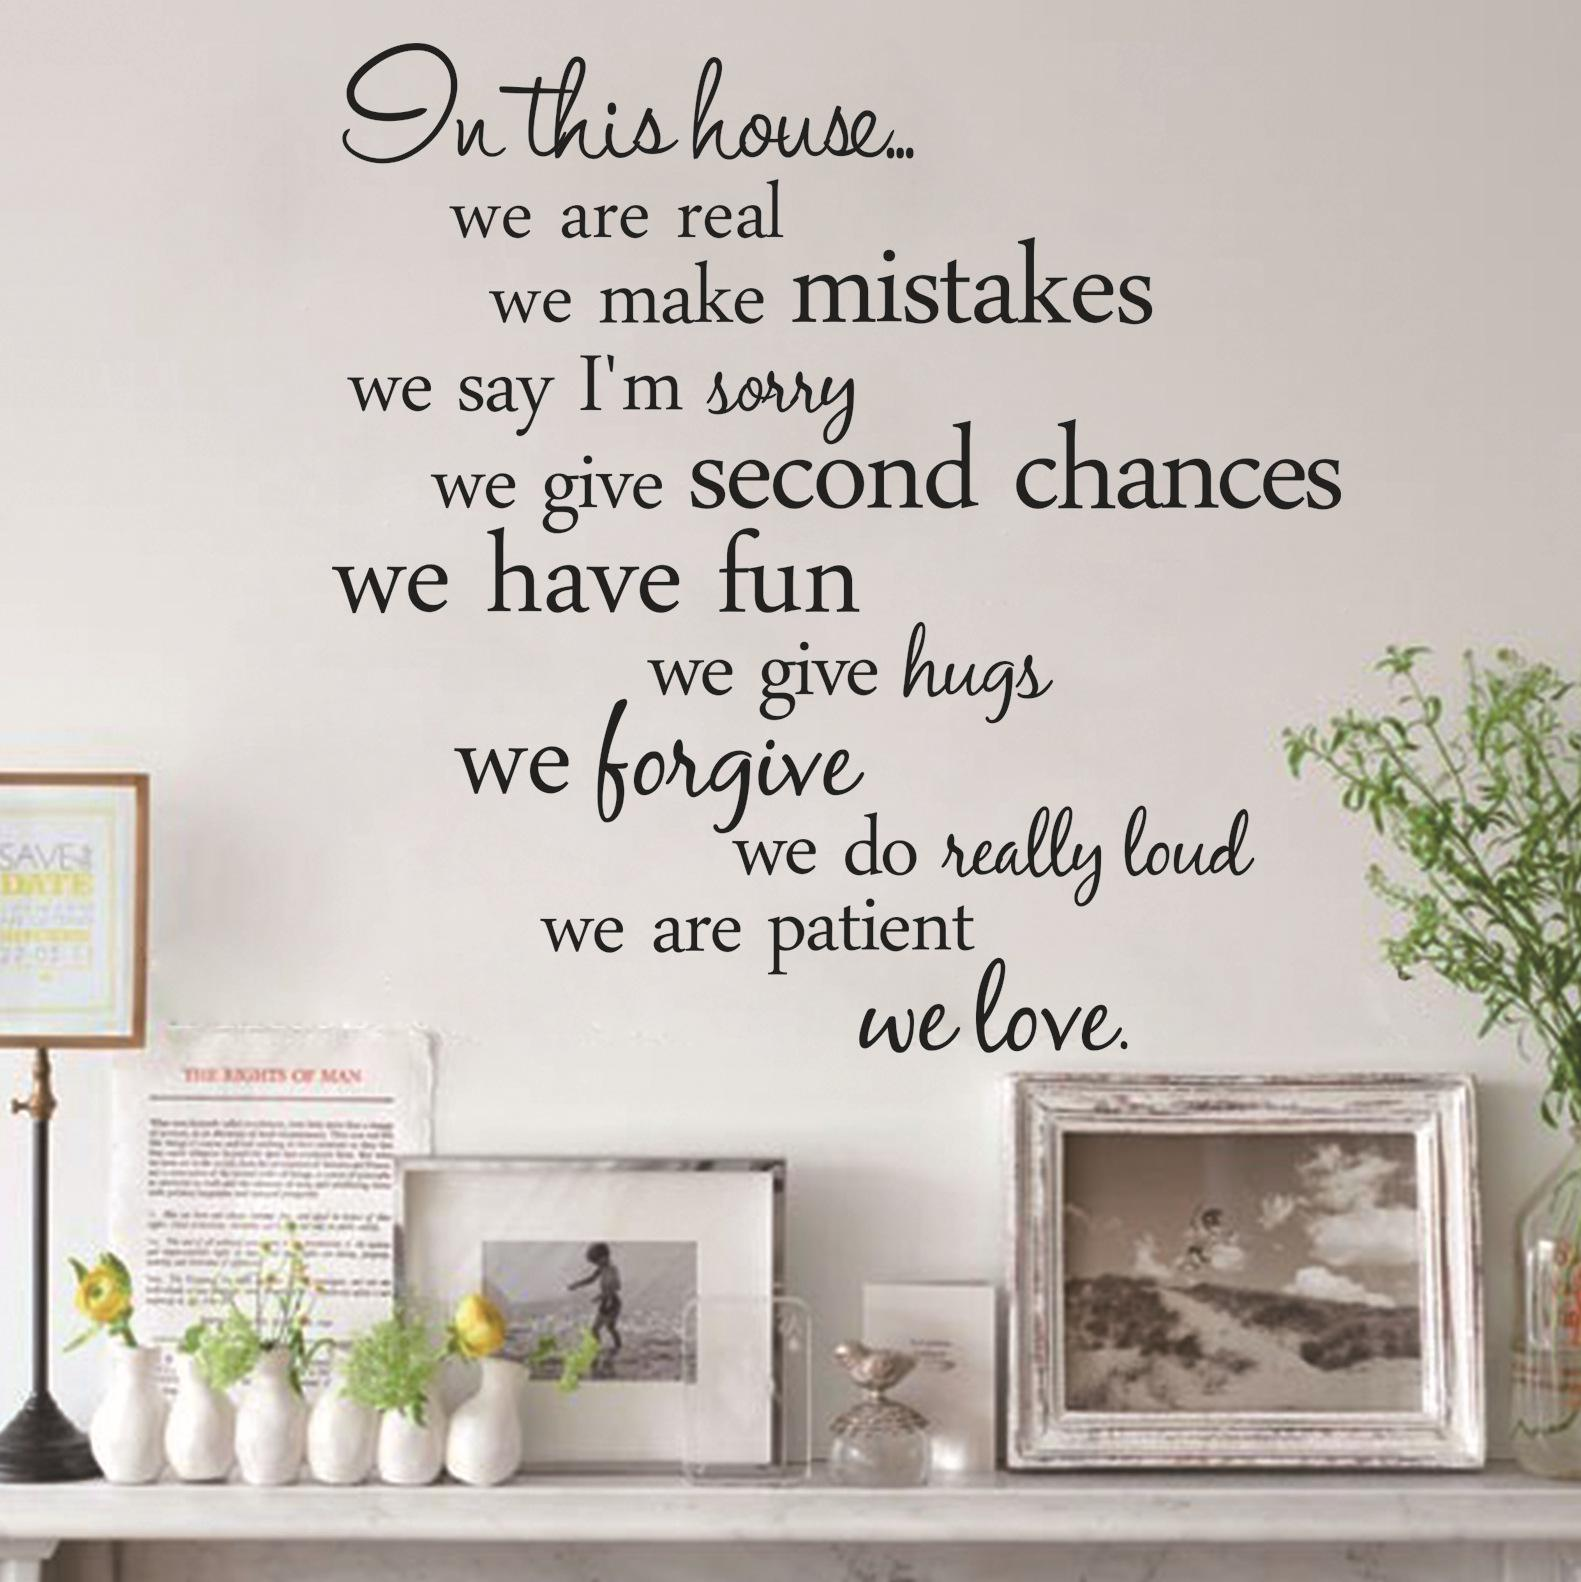 2015 english letter in this house living room background wall stickers uote removable wall decal stickers art home decor